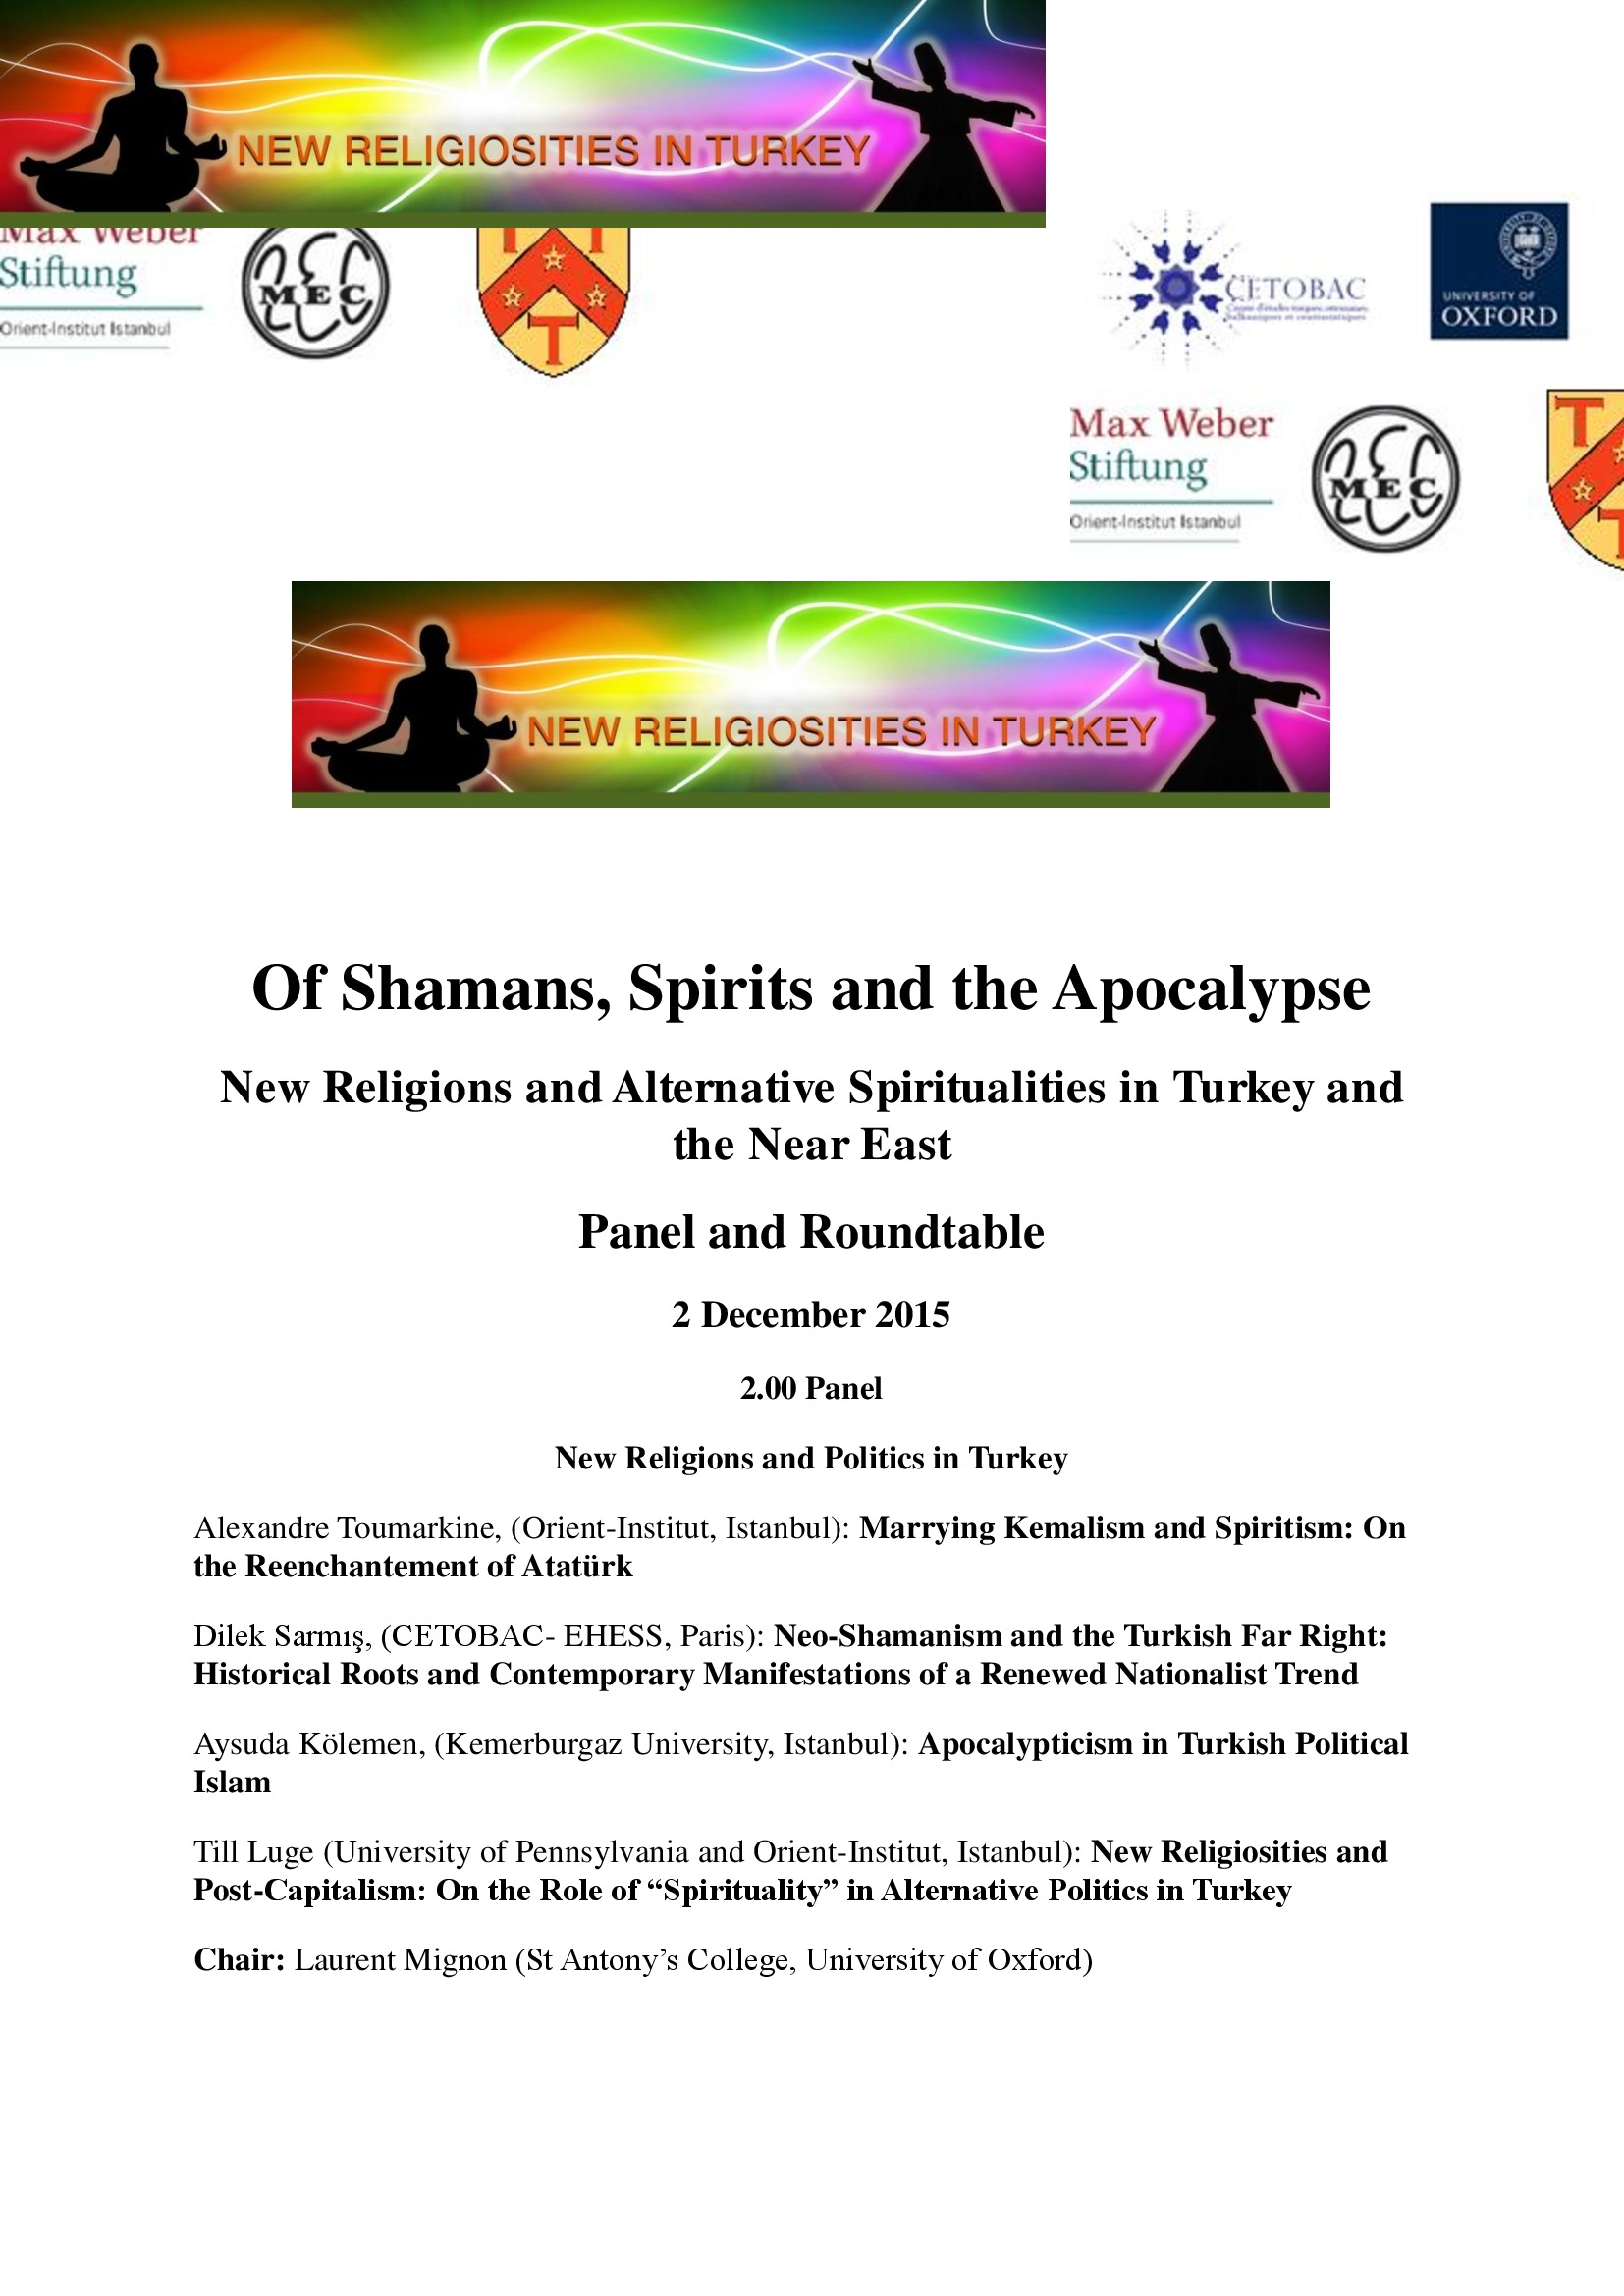 Colloque : Of Shamans, Spirits and the Apocalypse : New Religions and Alternative Spiritualities in Turkey and the Near East. St Anthony's College, University of Oxford, 2 December 2015, de 14h à 18h